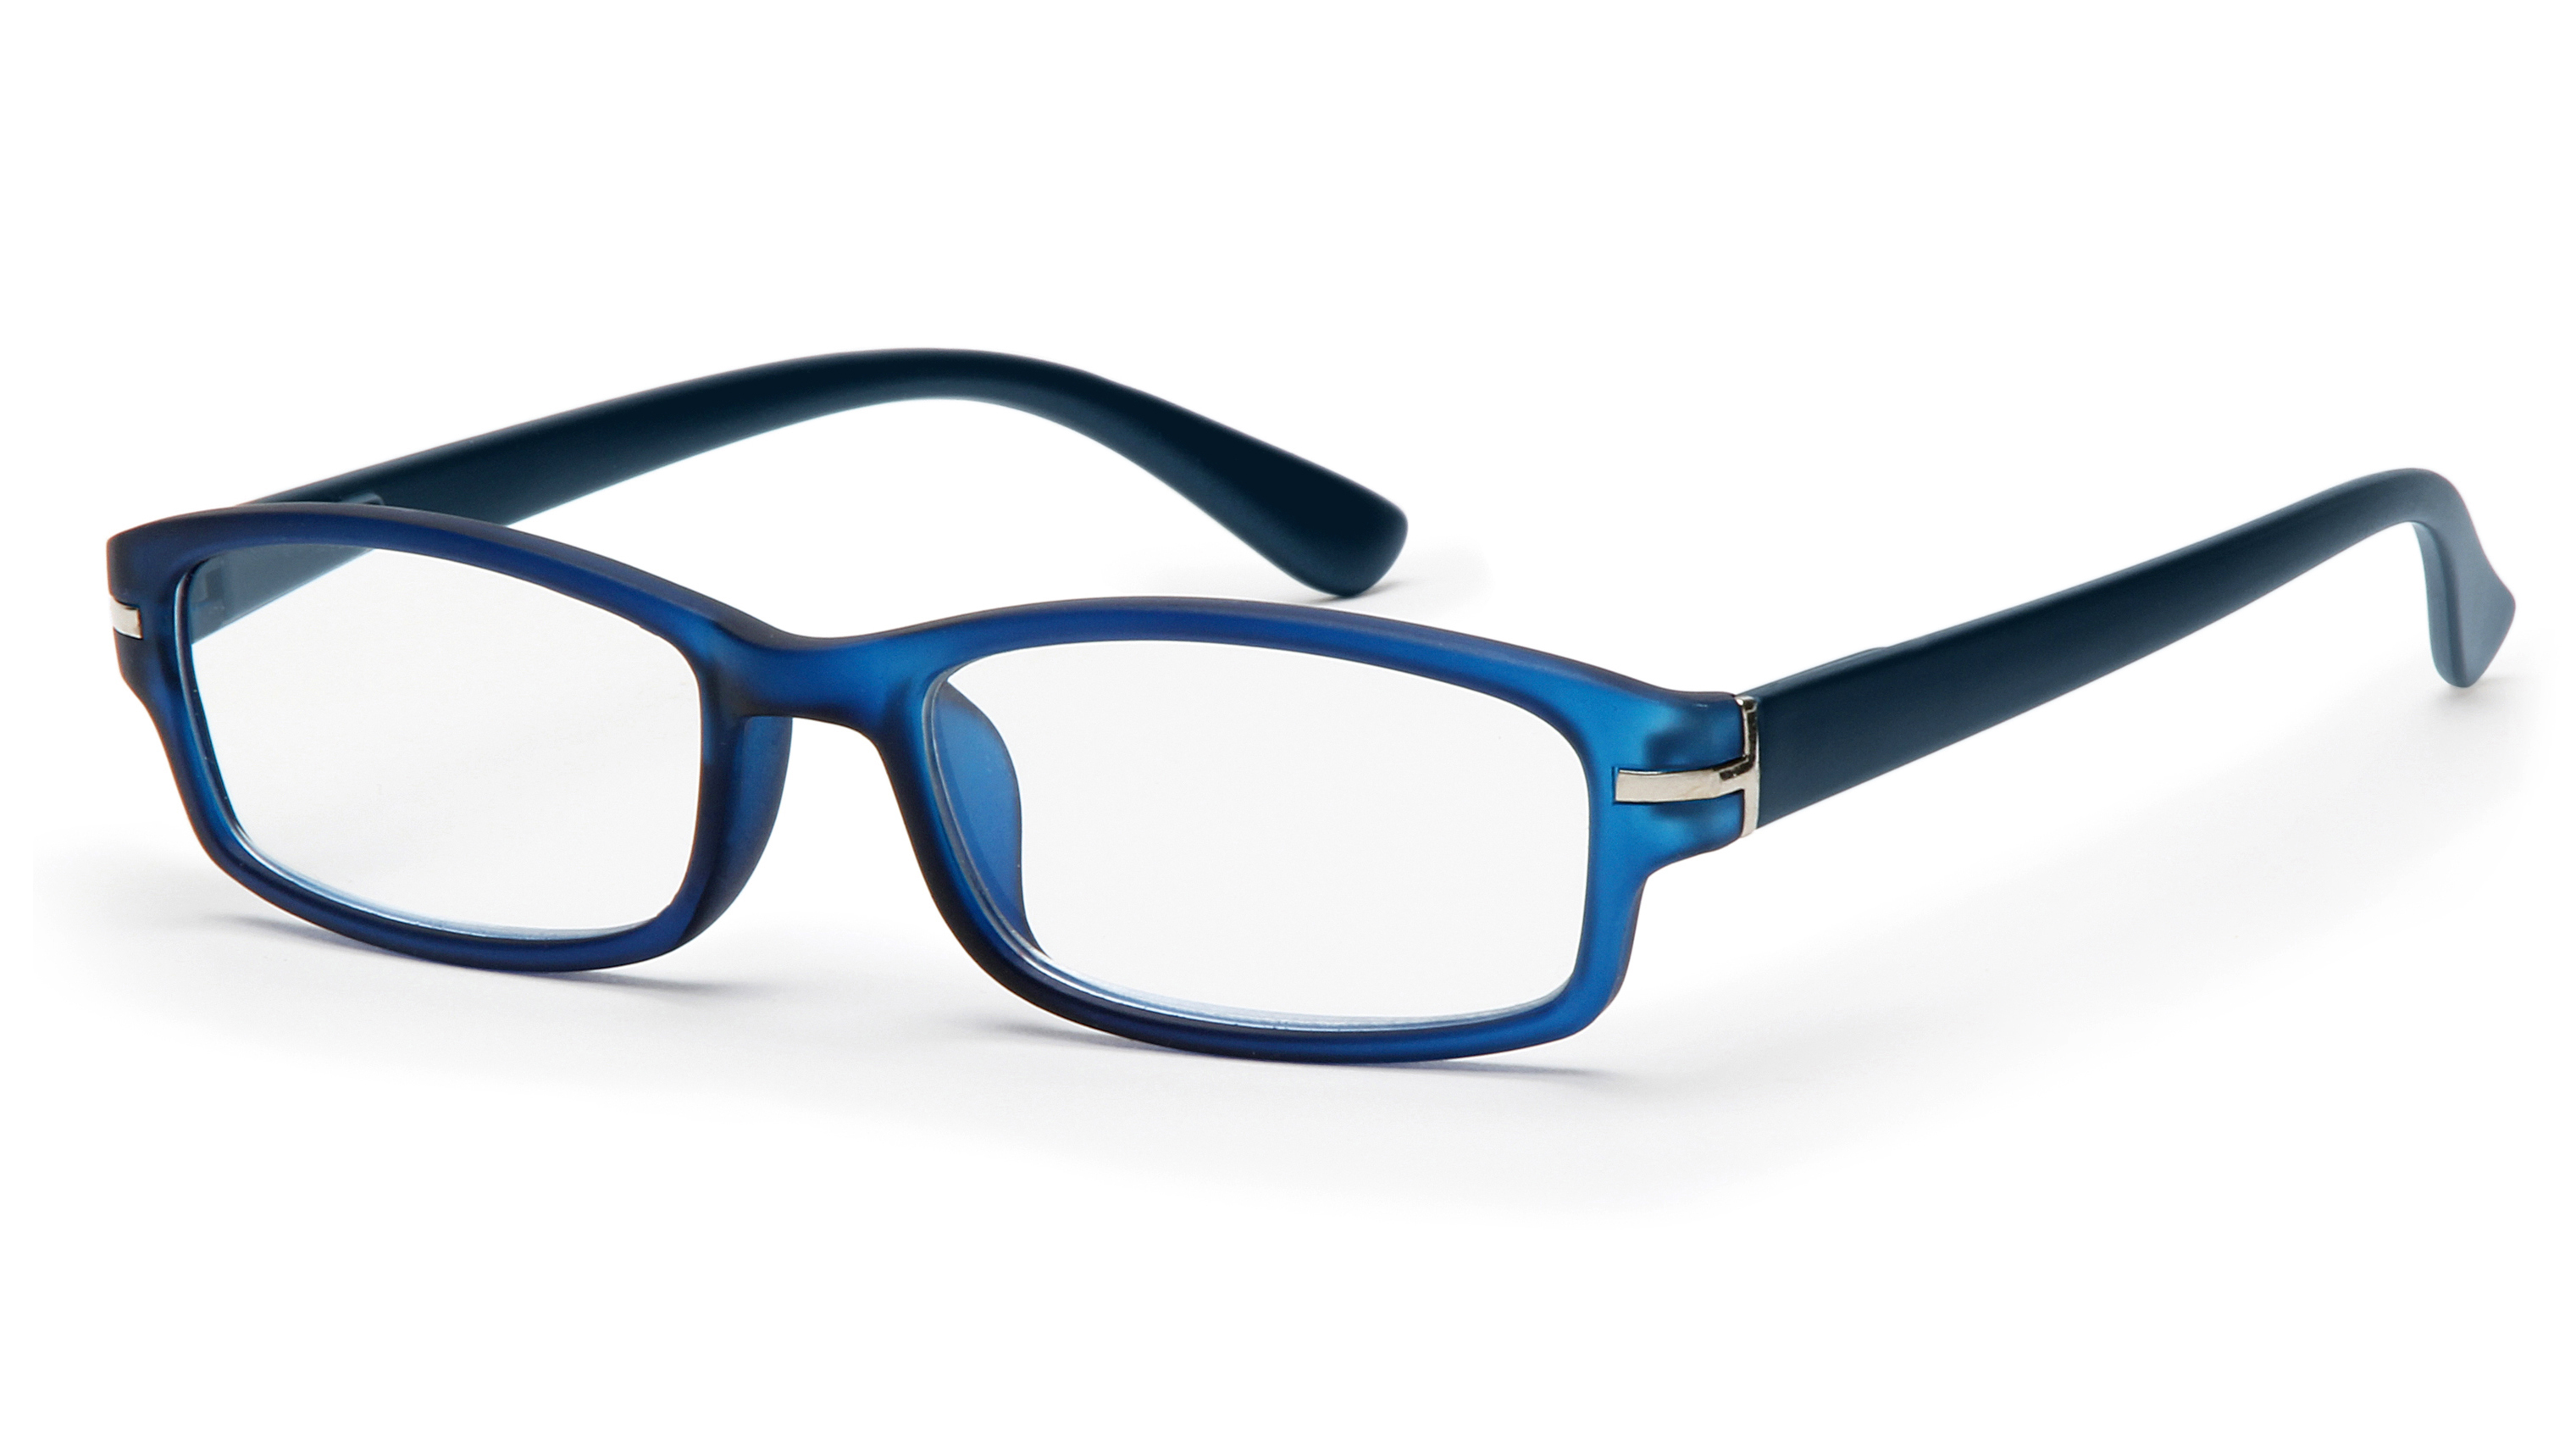 Main view reading glasses Sydney blue